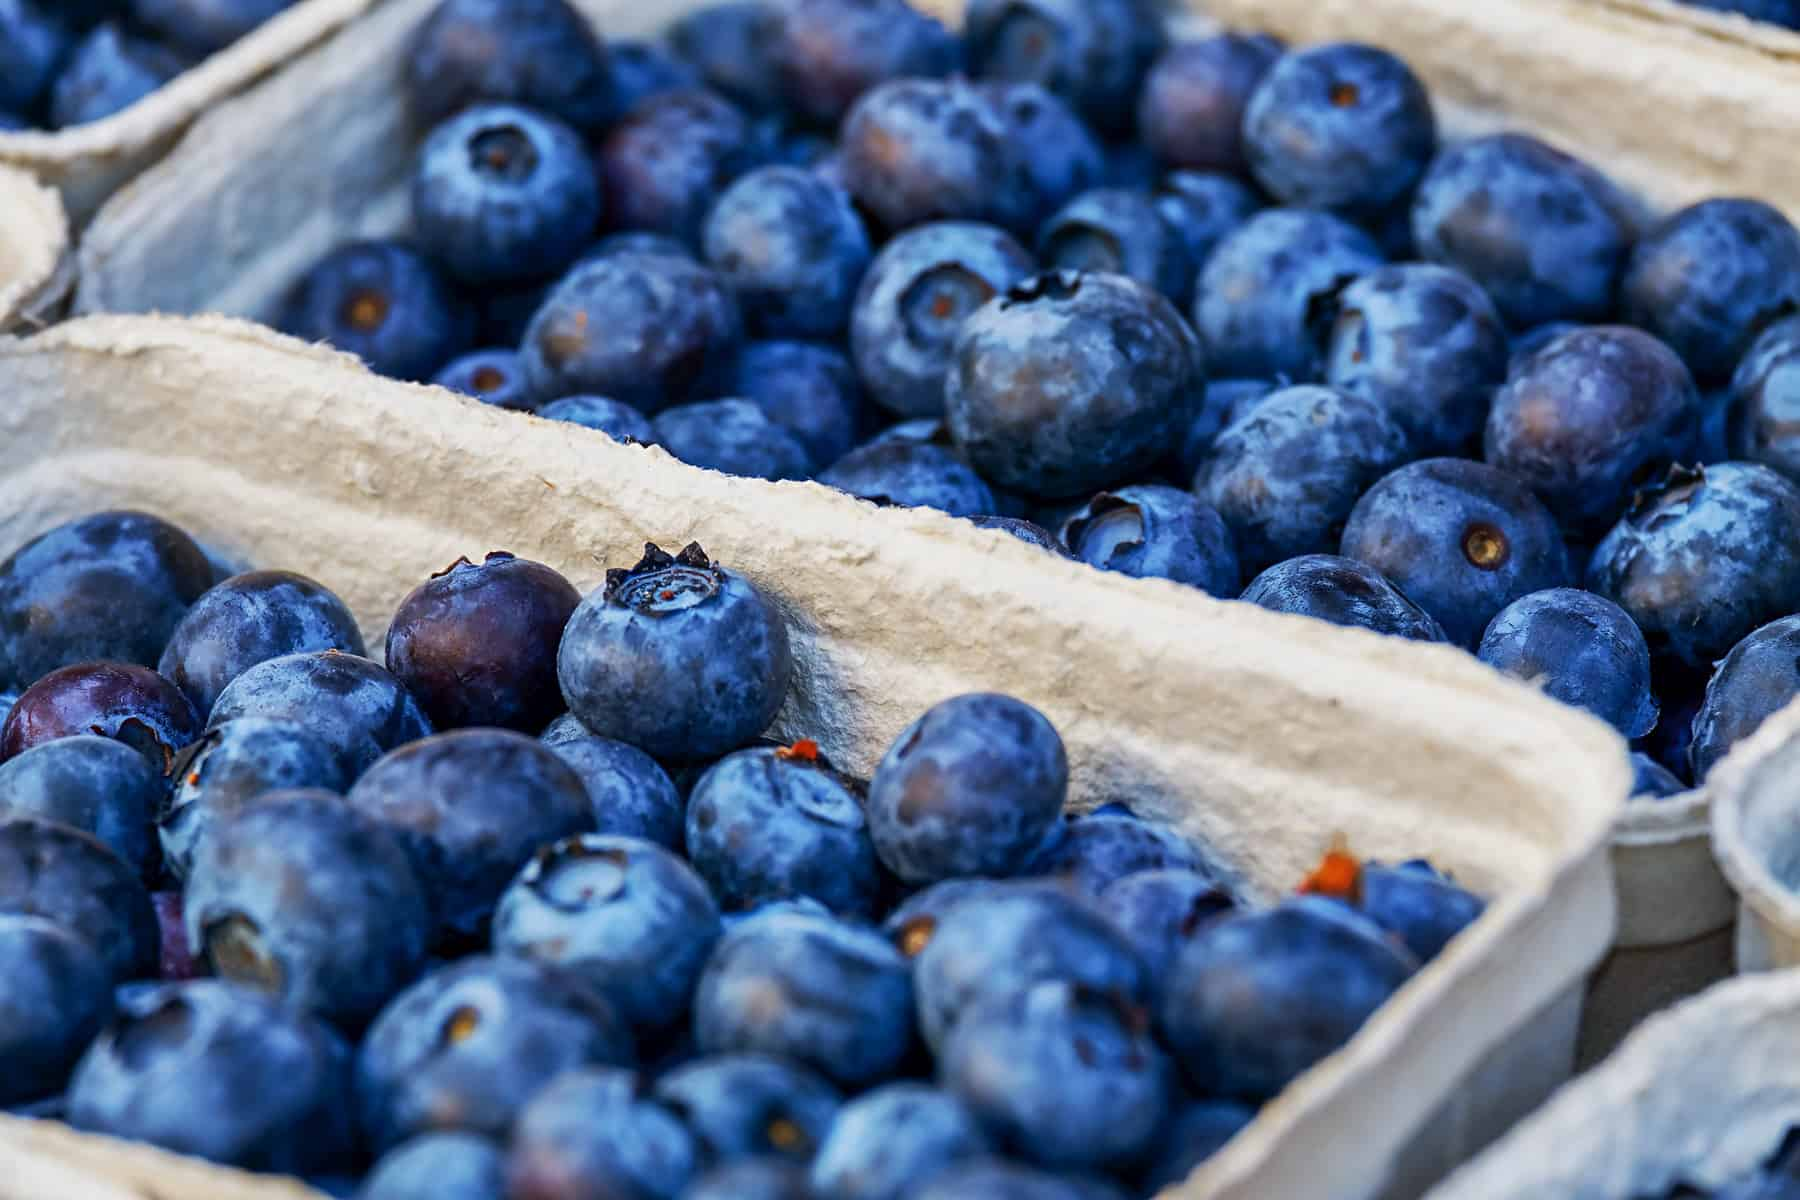 Blueberries in paper cartons